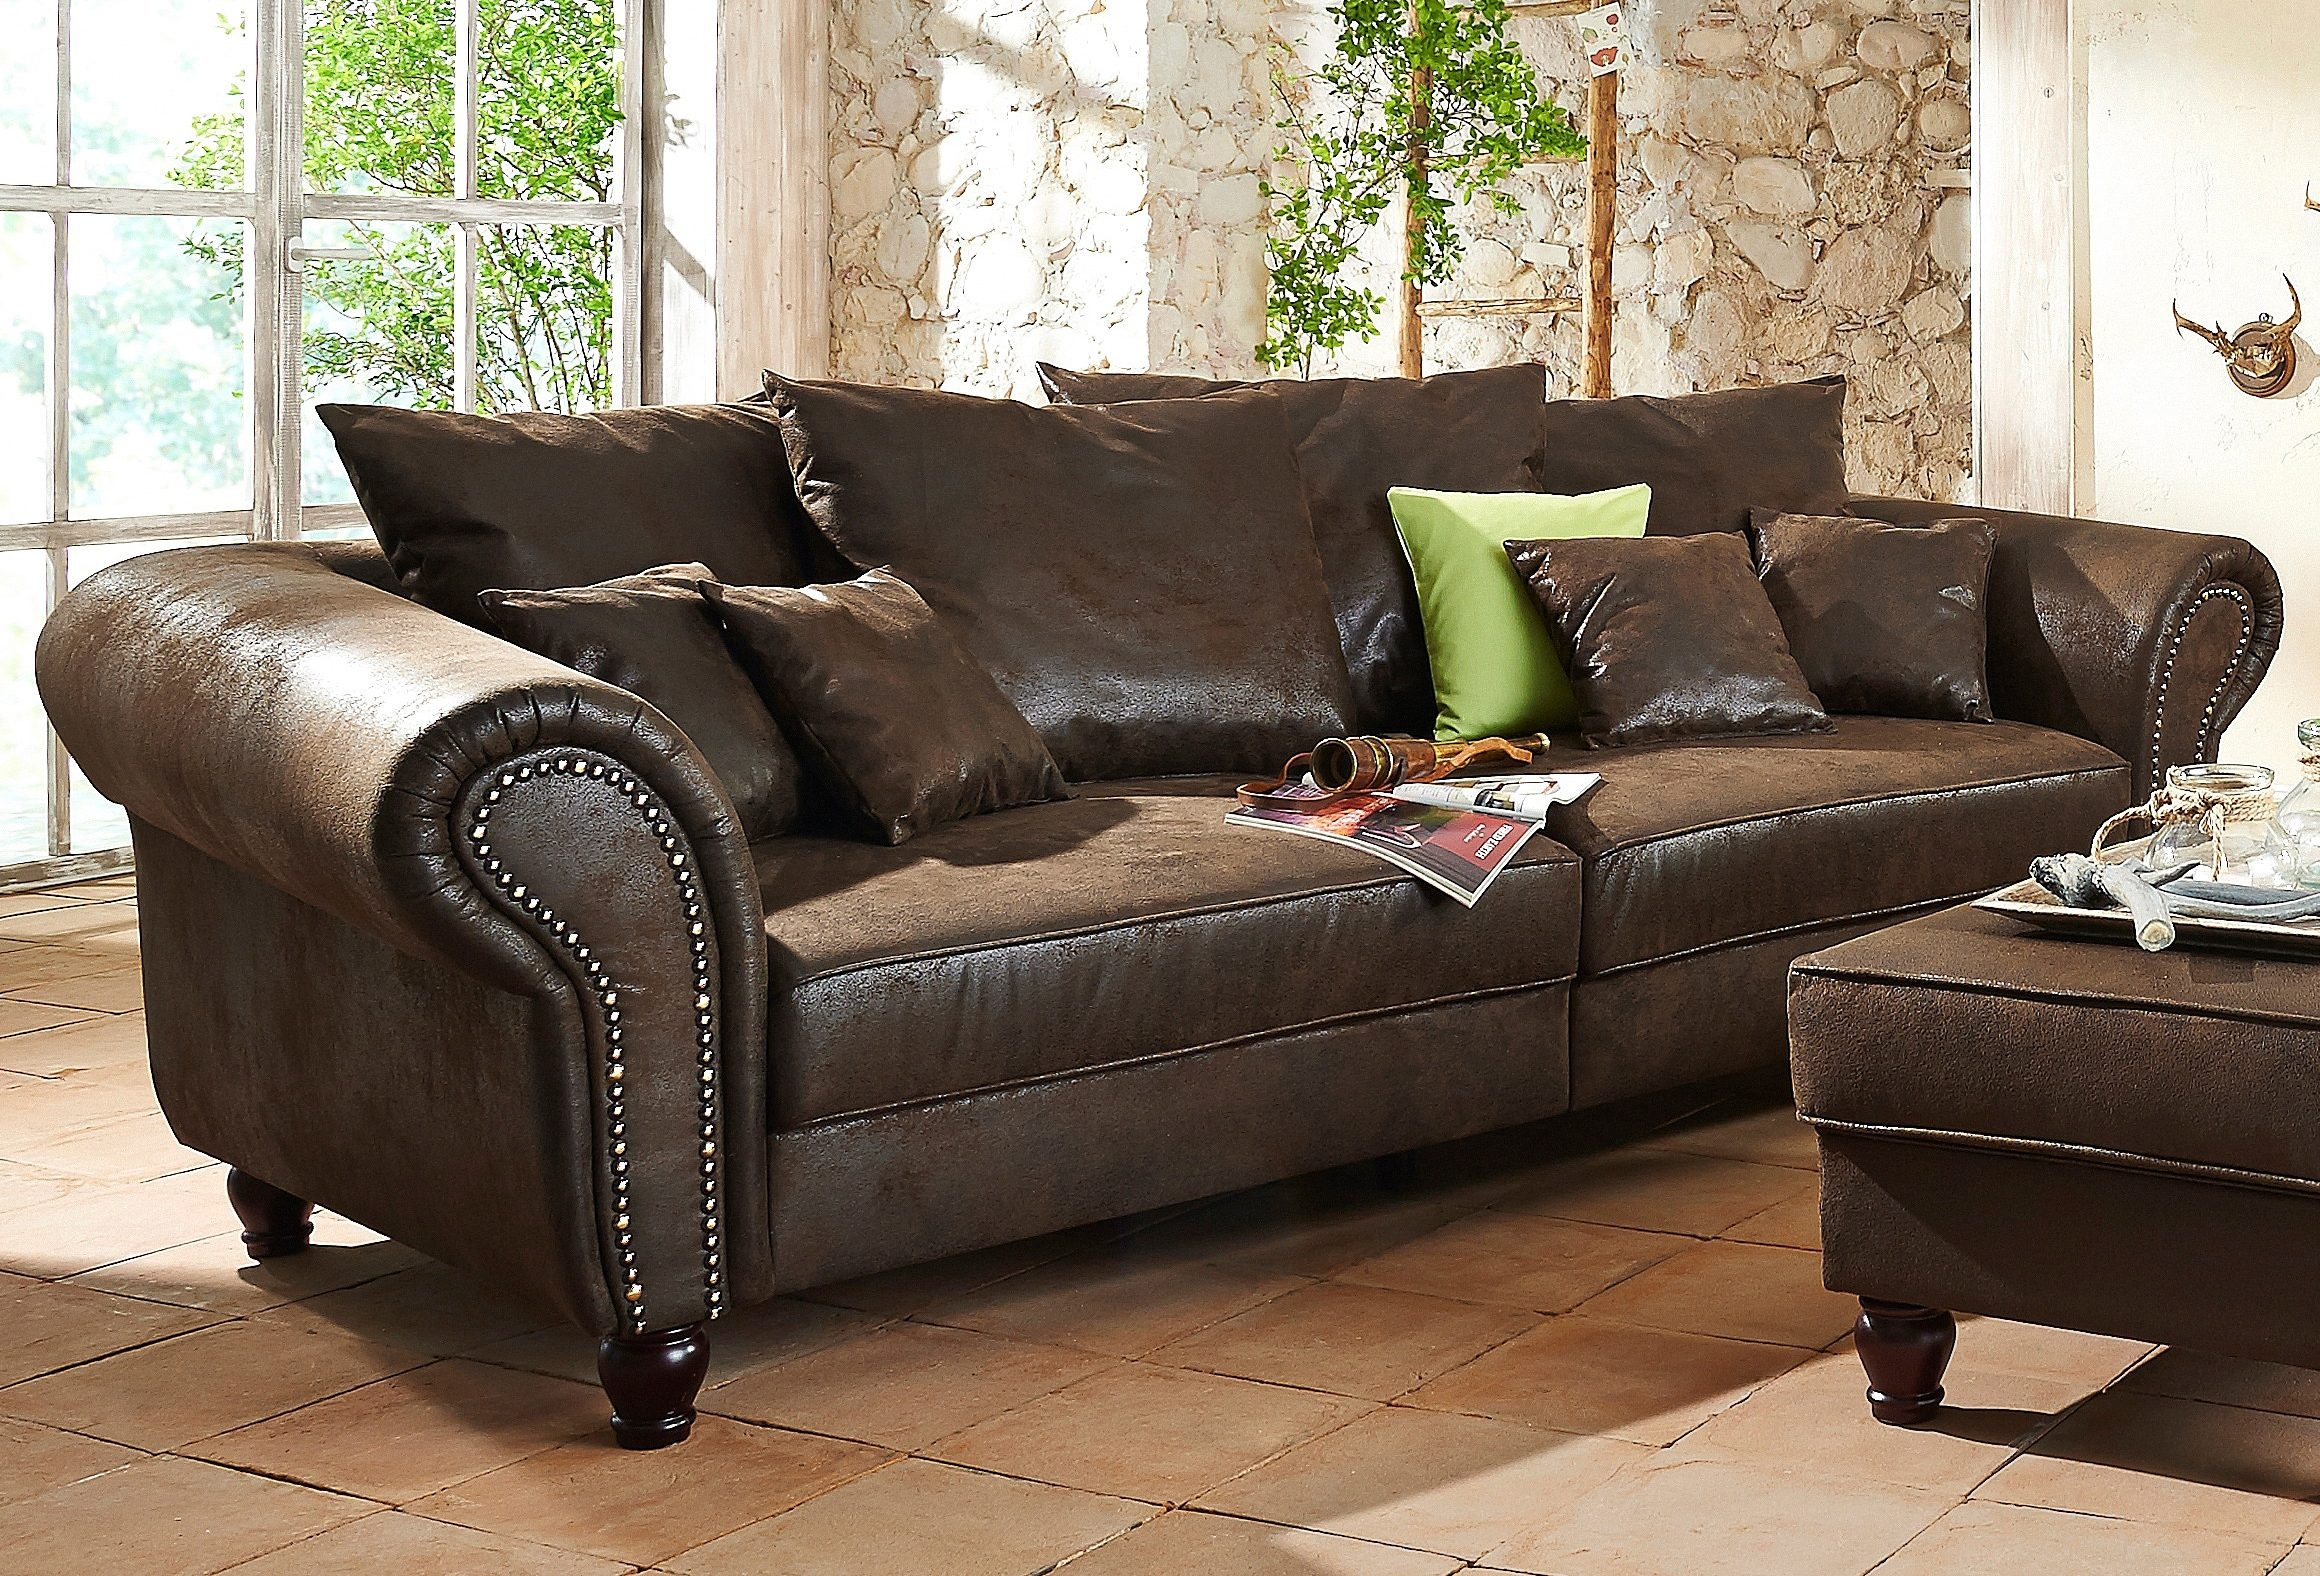 Home Affaire Big Sofa Bigby Kaufen Baur